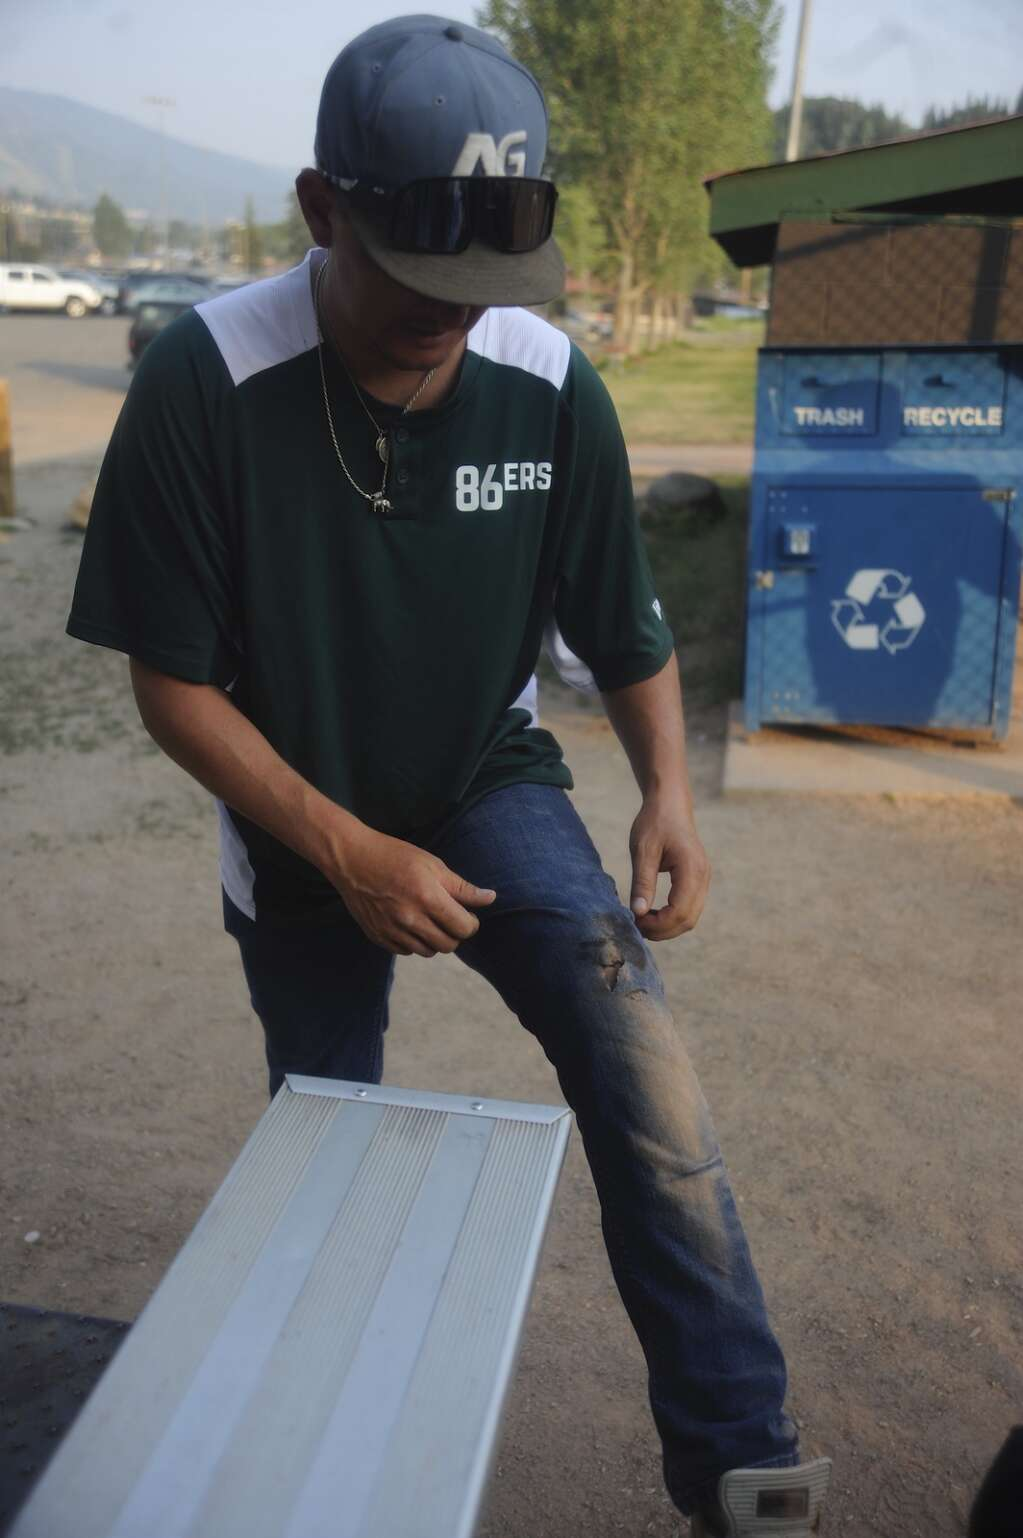 Chad Oliver of The 86ers decided to wear jeans to Monday night's men's league softball game. He tore them early on while sliding. The 86ers are a self-proclaimed band of misfits and have been around for about 10 years. (Photo by Shelby Reardon)